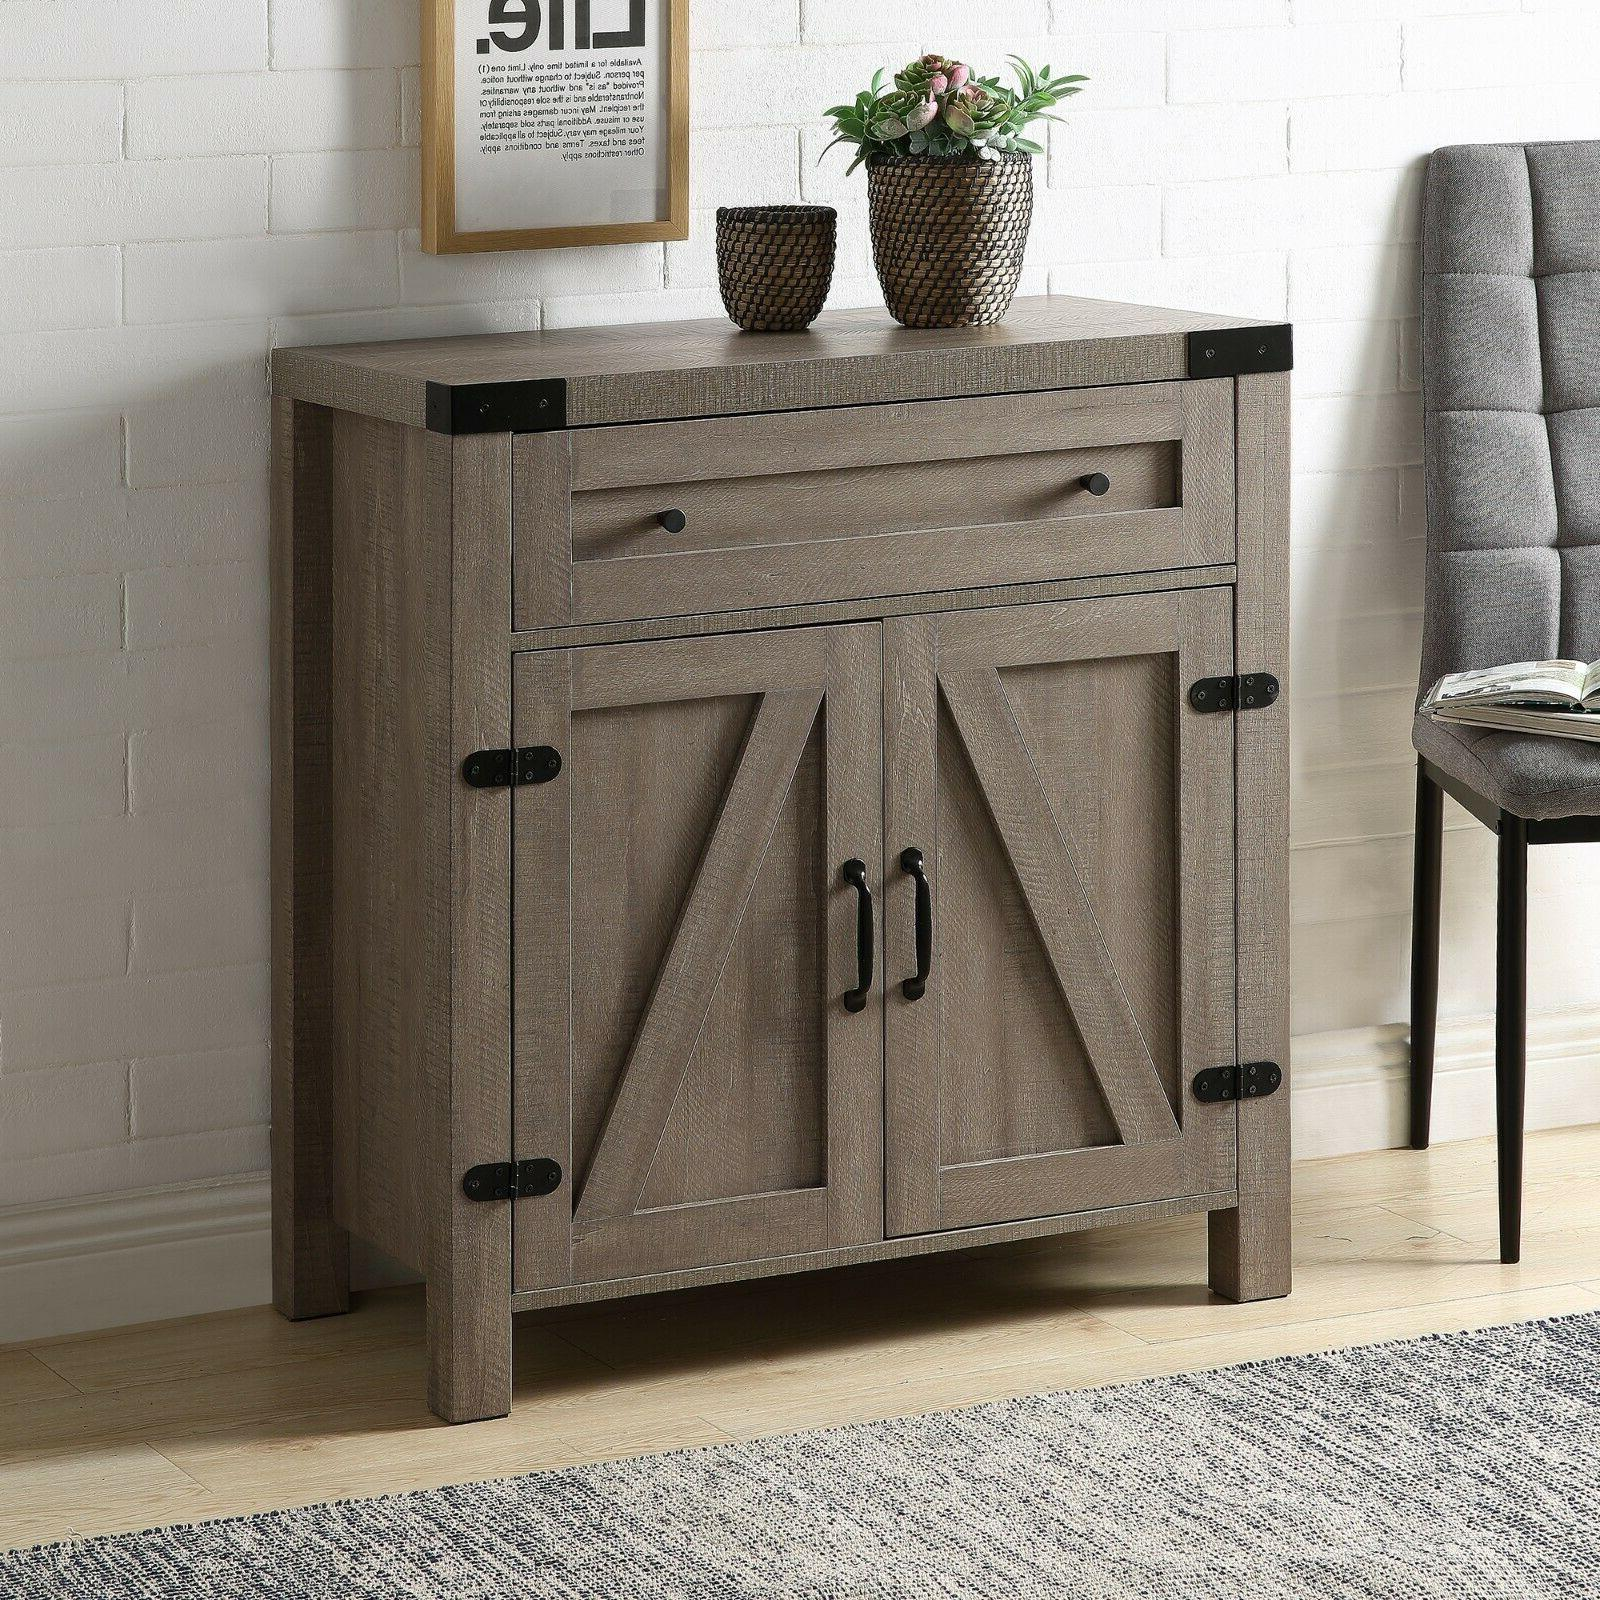 Rustic Console Side Table Retro Drawer US